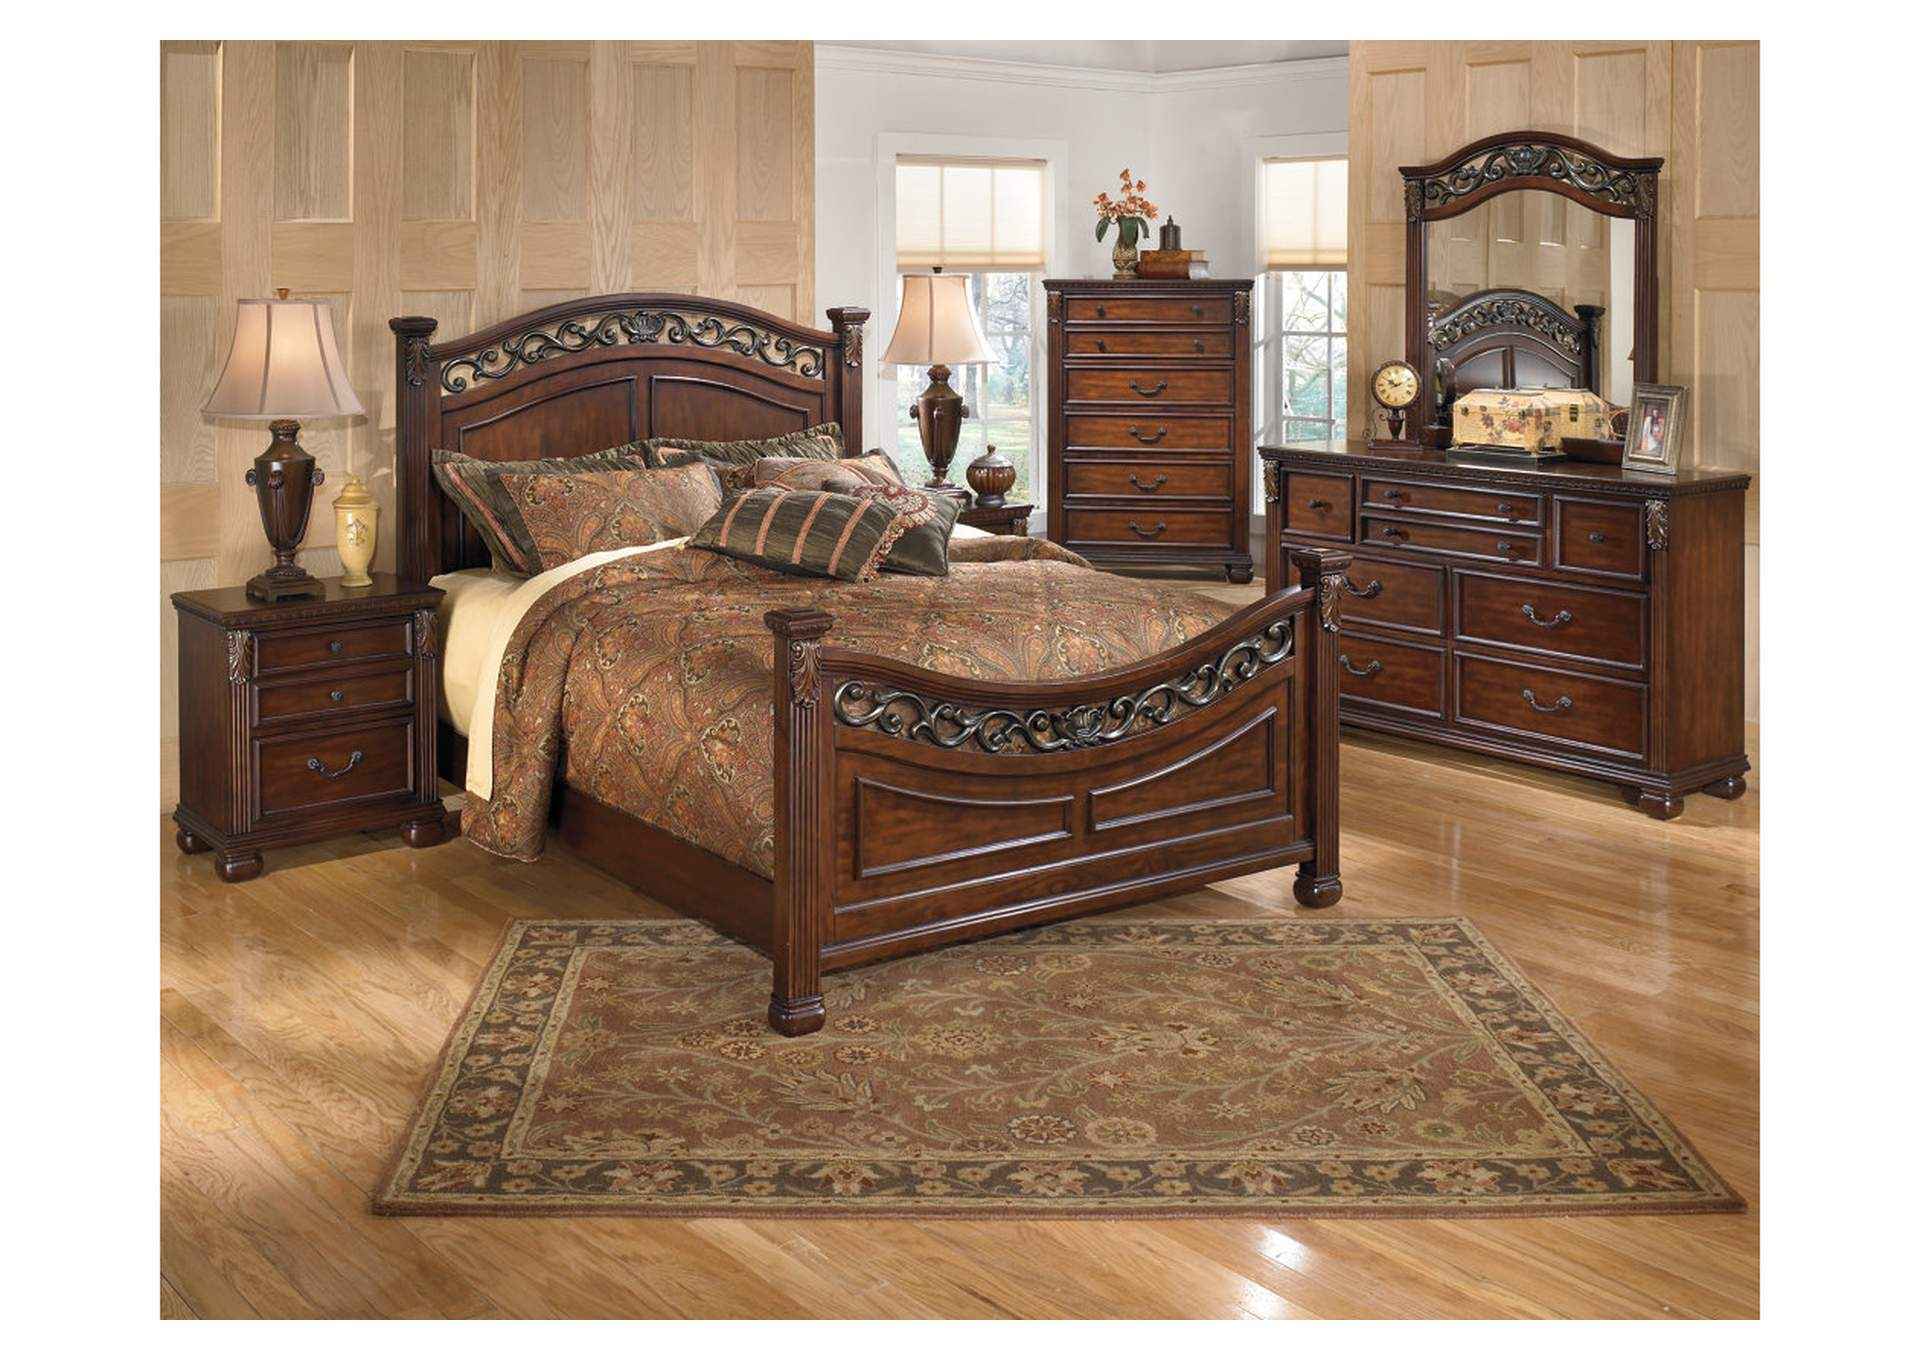 Leahlyn California King Panel Bed, Dresser & Mirror,Signature Design By Ashley